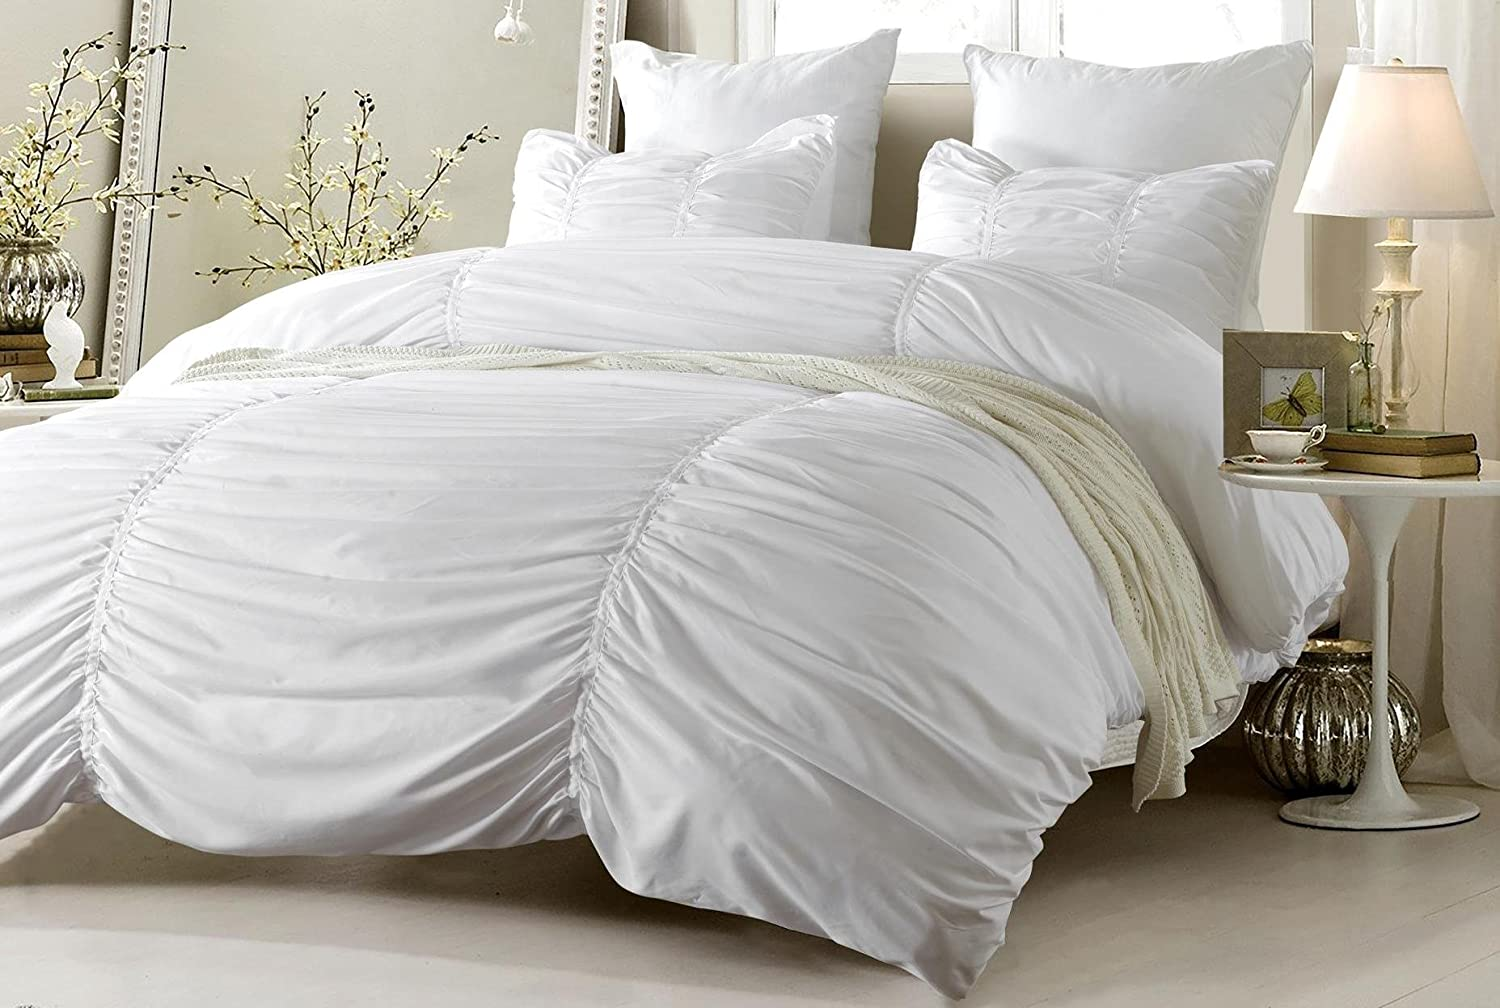 king size white trim with from within duvetss bath silk cover set new monasheephoto regarding beyond full covers red california for silver duvets faux duvet buy incredible of diamante neutral